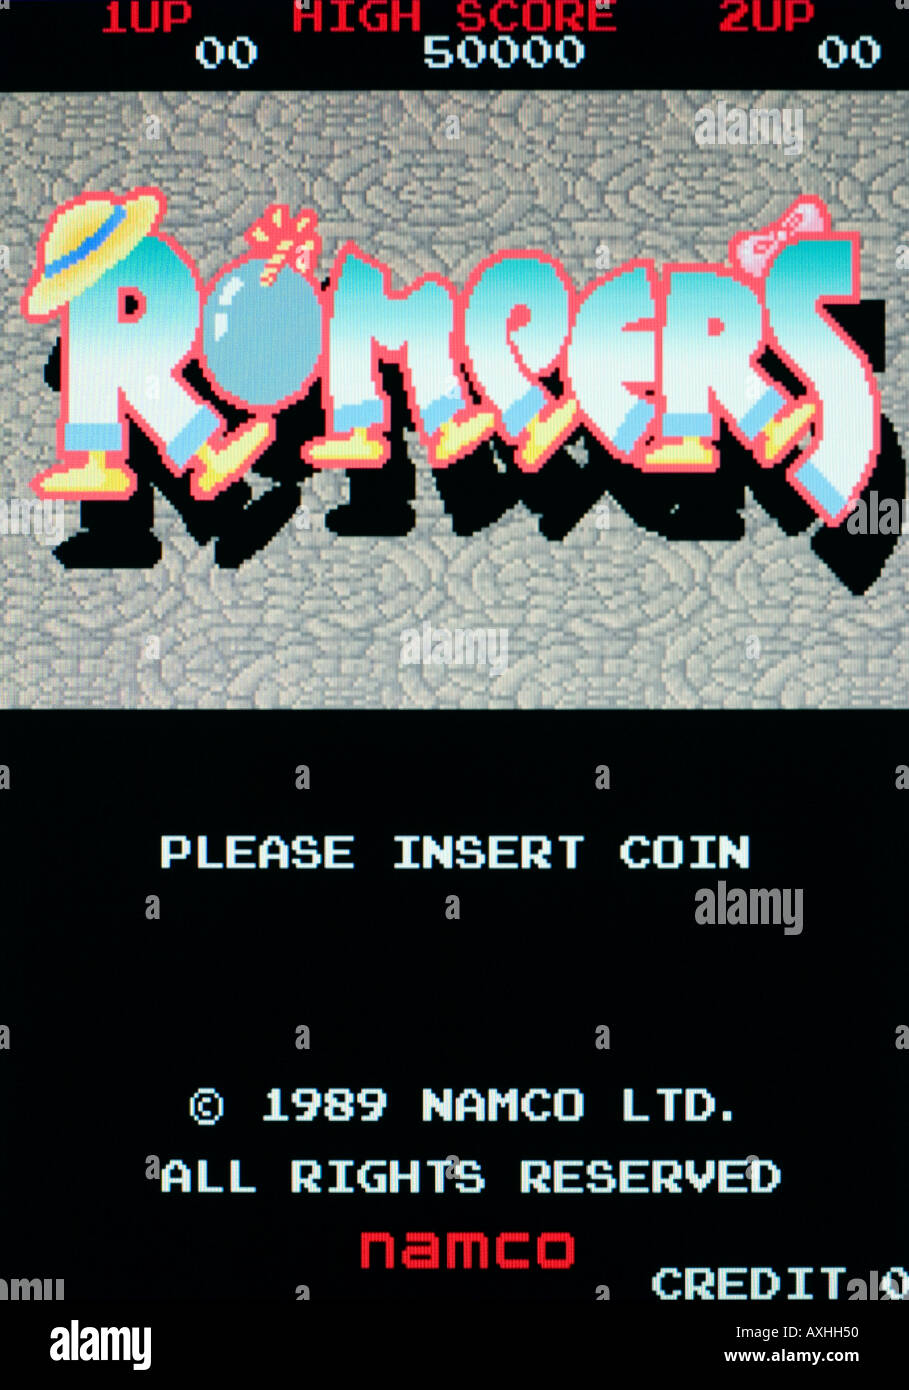 Rompers Namco 1989 Vintage arcade videogame screen shot - EDITORIAL USE ONLY - Stock Image